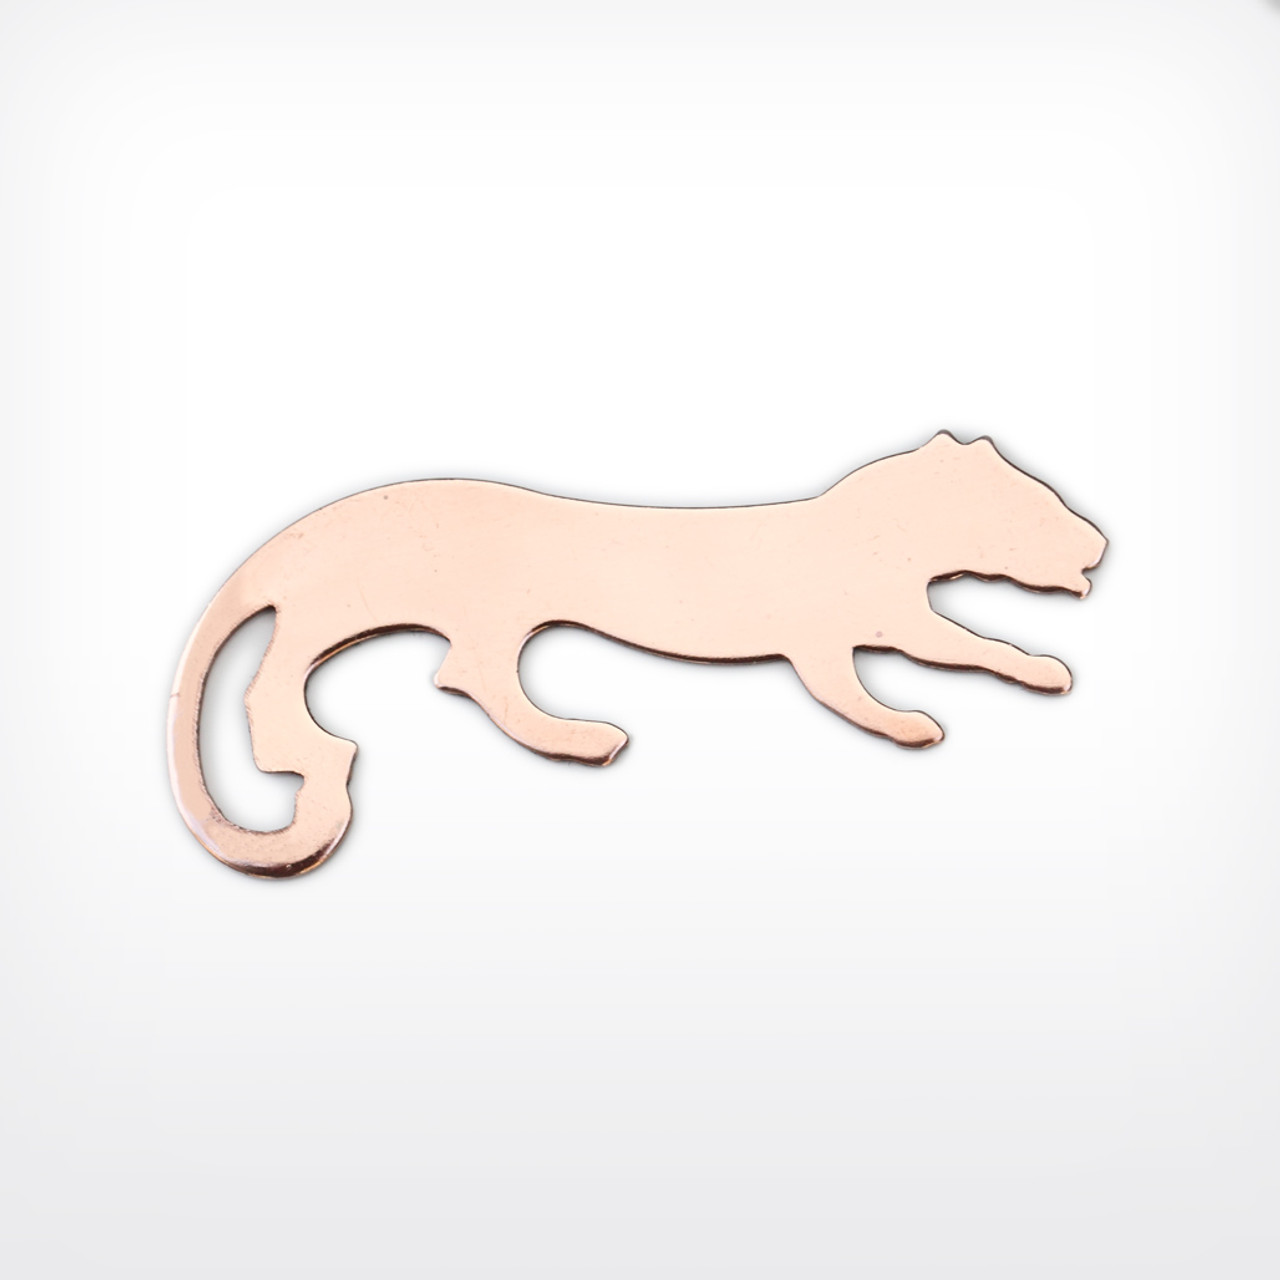 Panther - Pack of 10 (403-CU) - END OF LINE 50% OFF